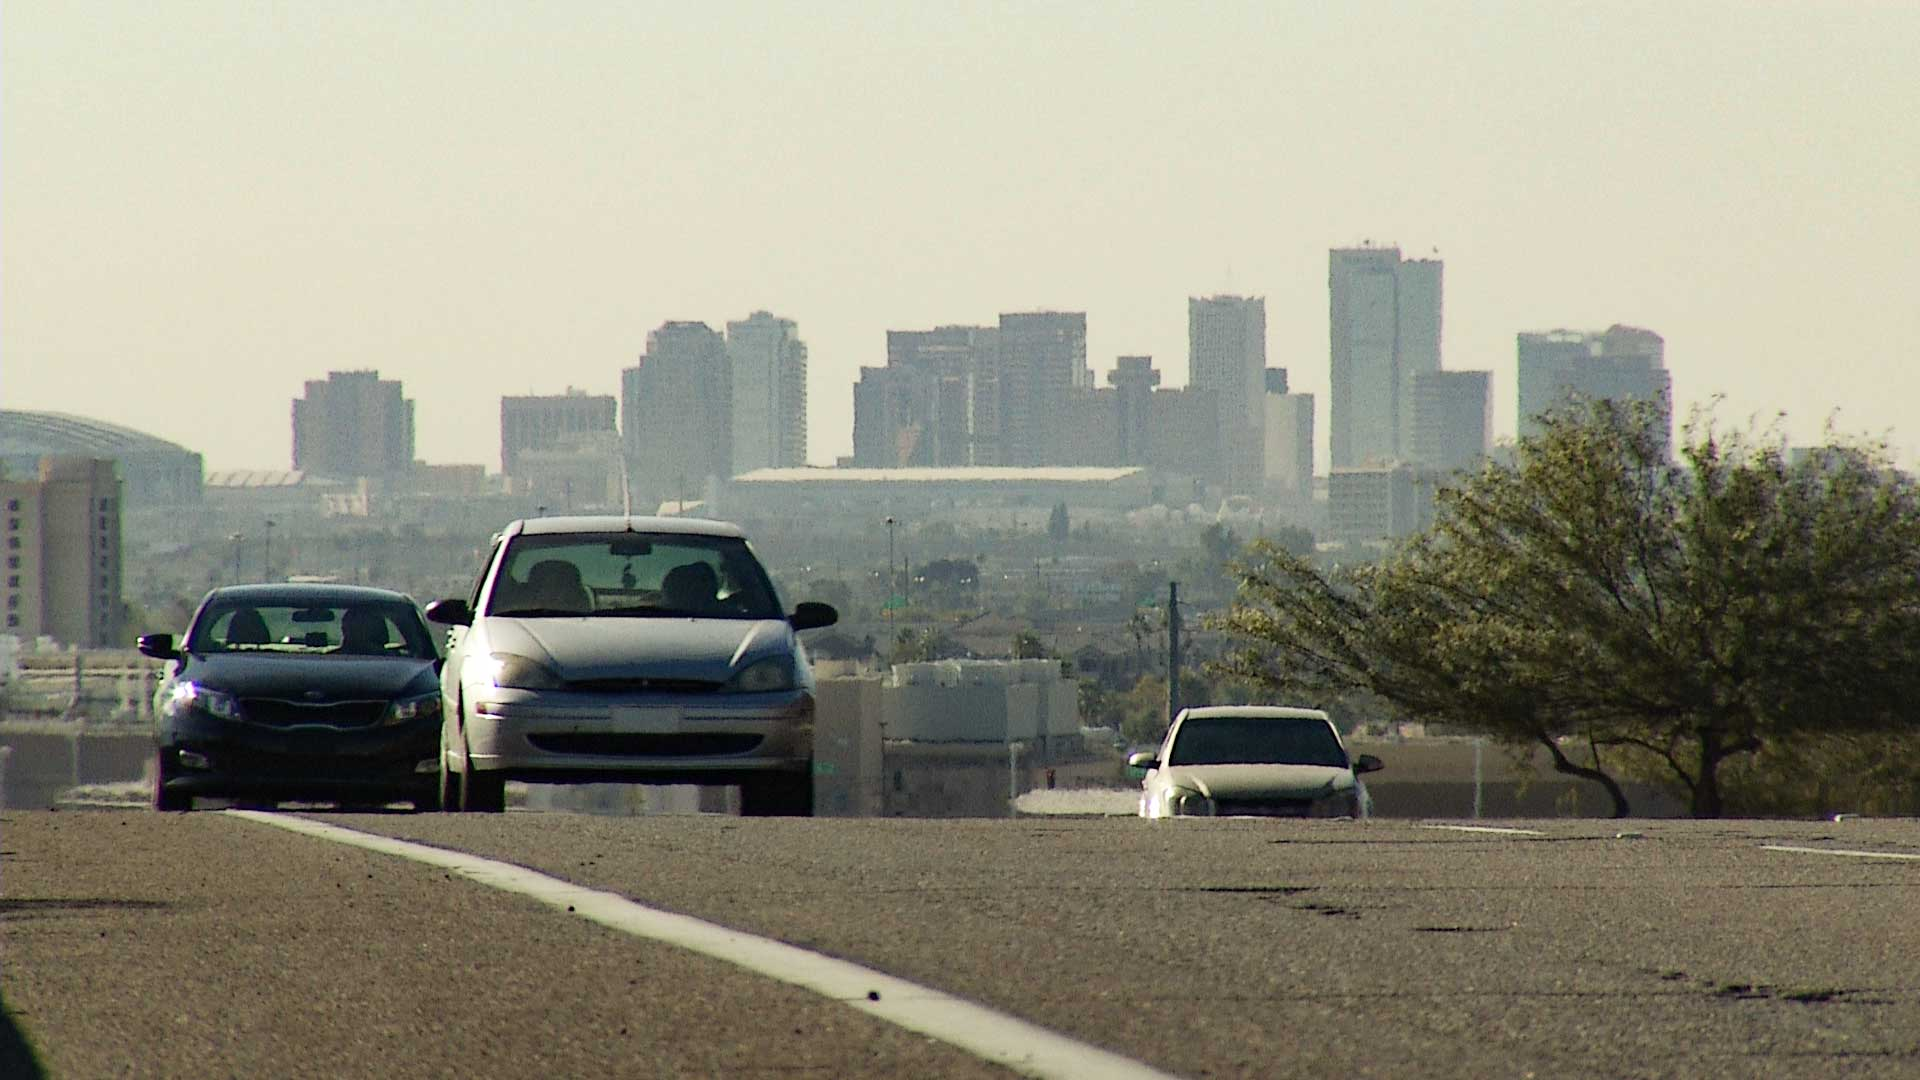 Cars driving with downtown Phoenix in the background